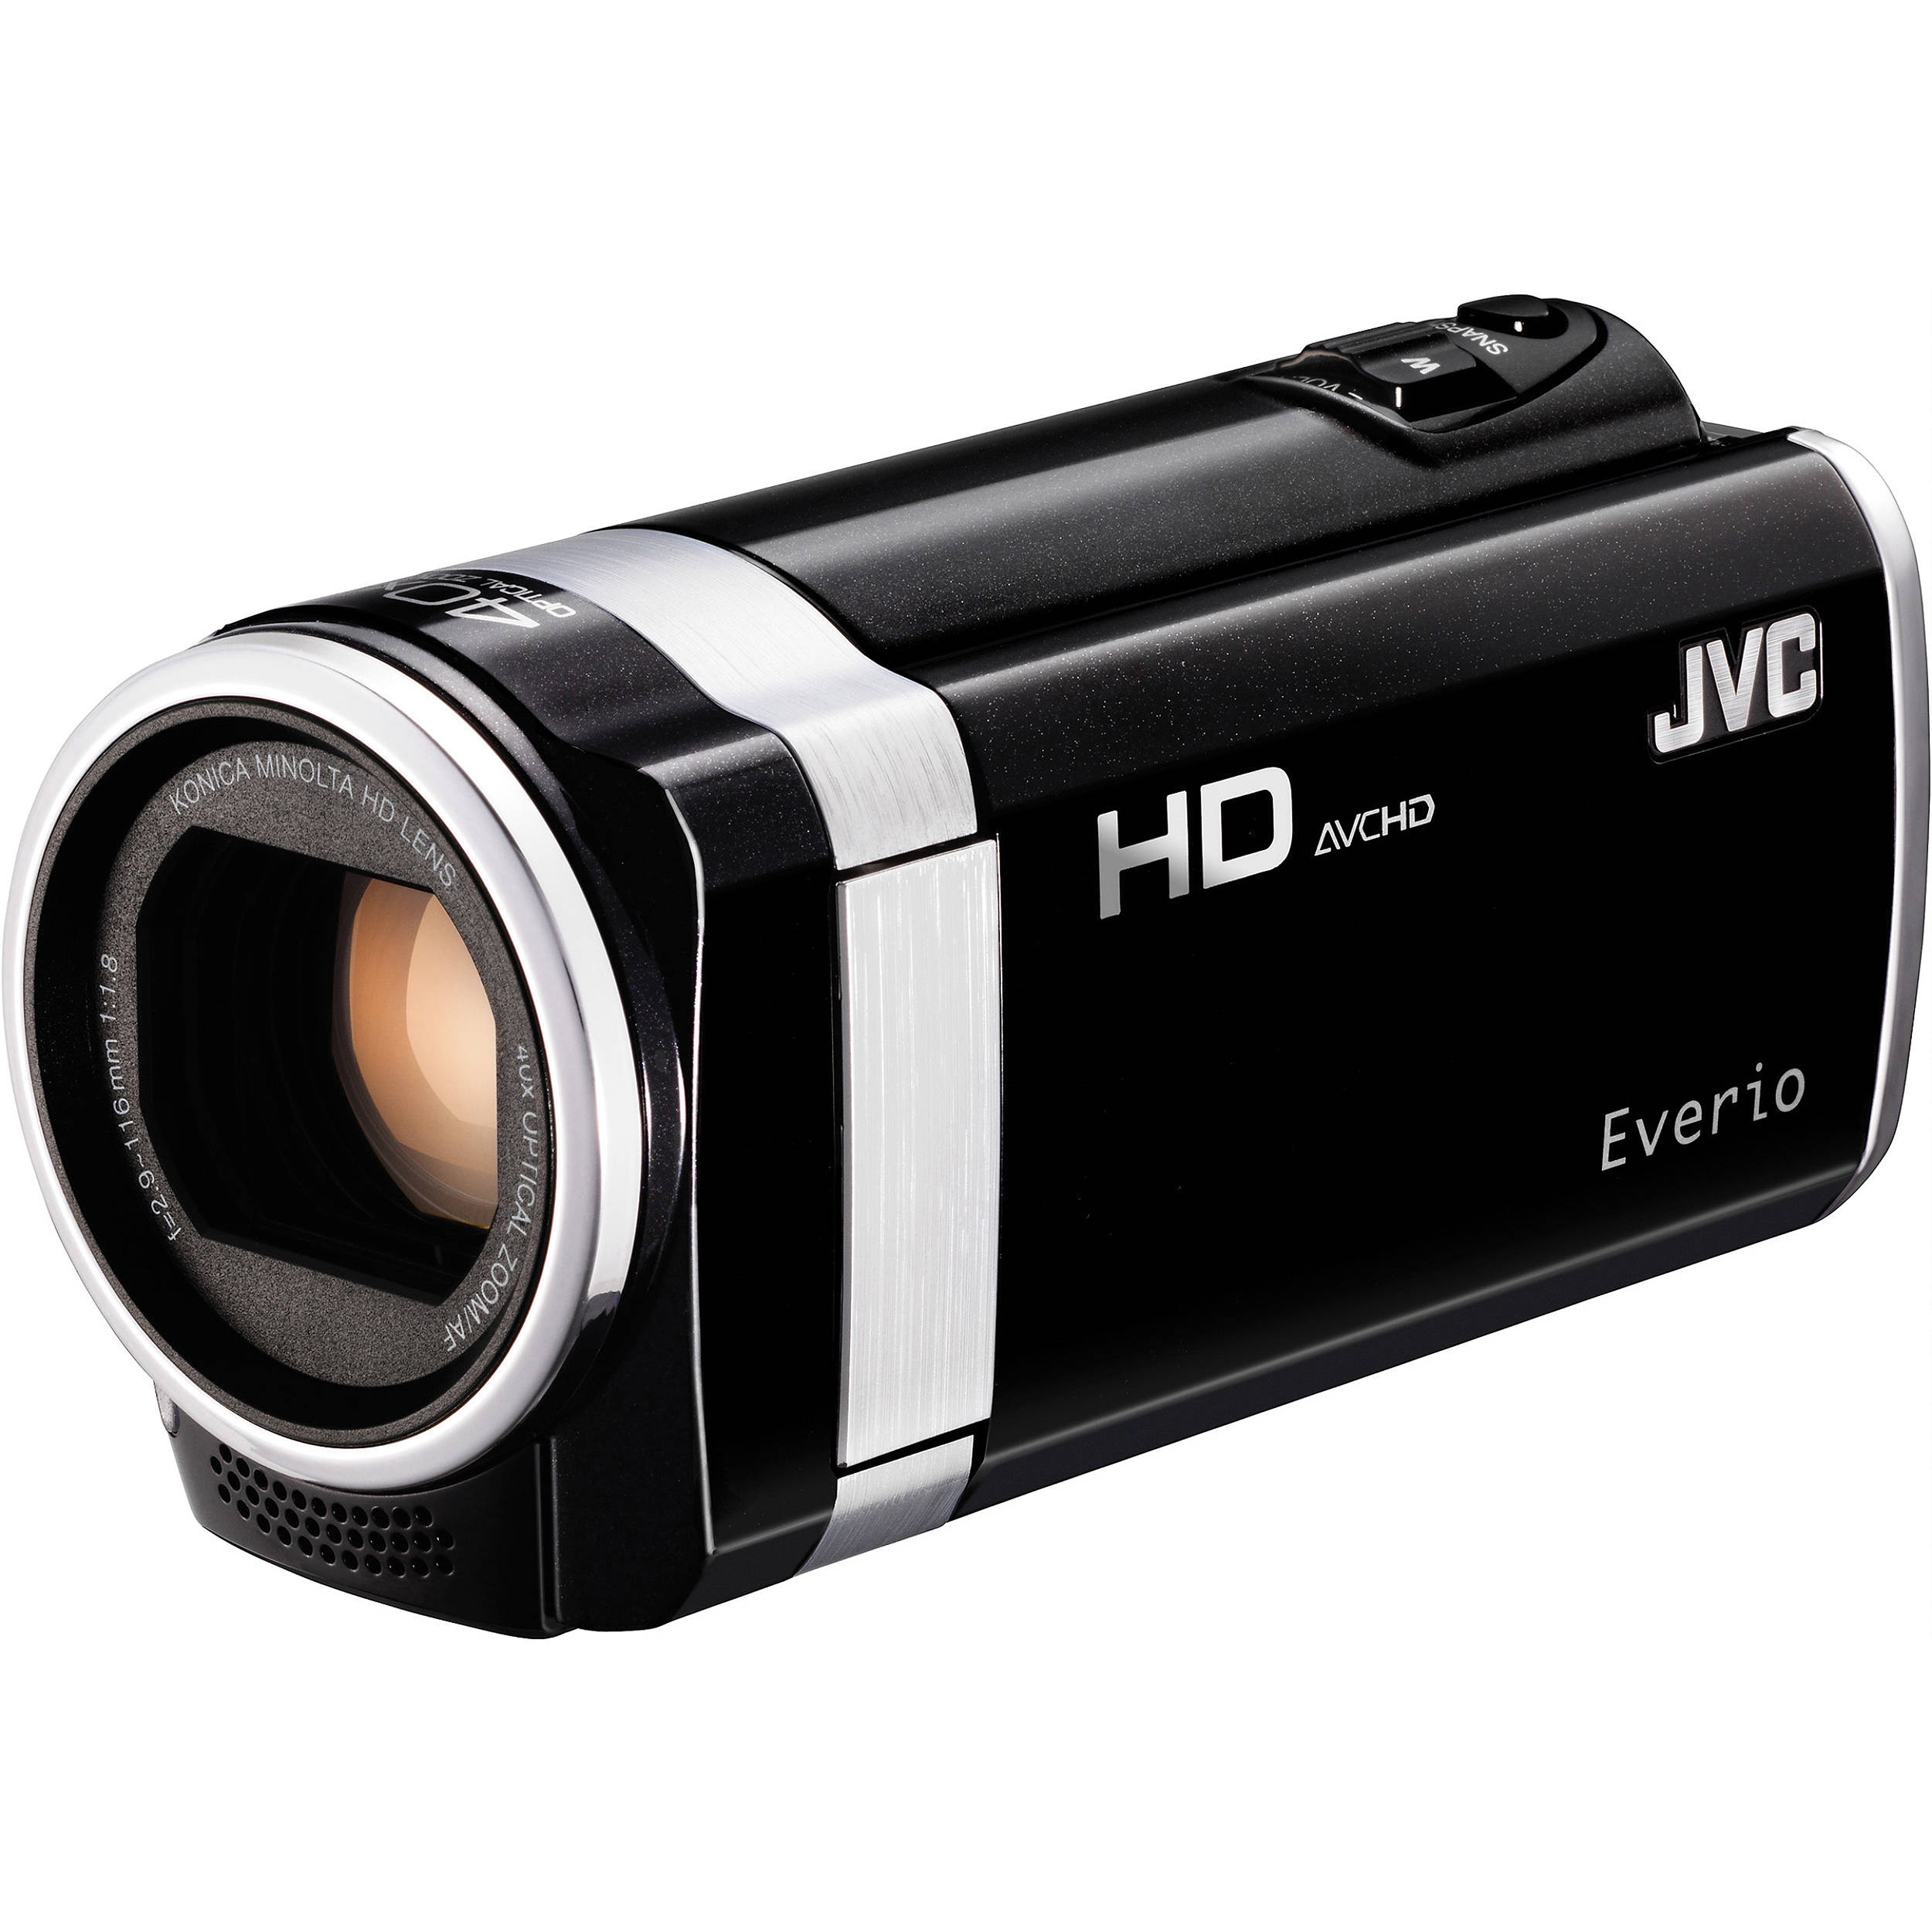 JVC GZ-HM650 HD Everio Camcorder